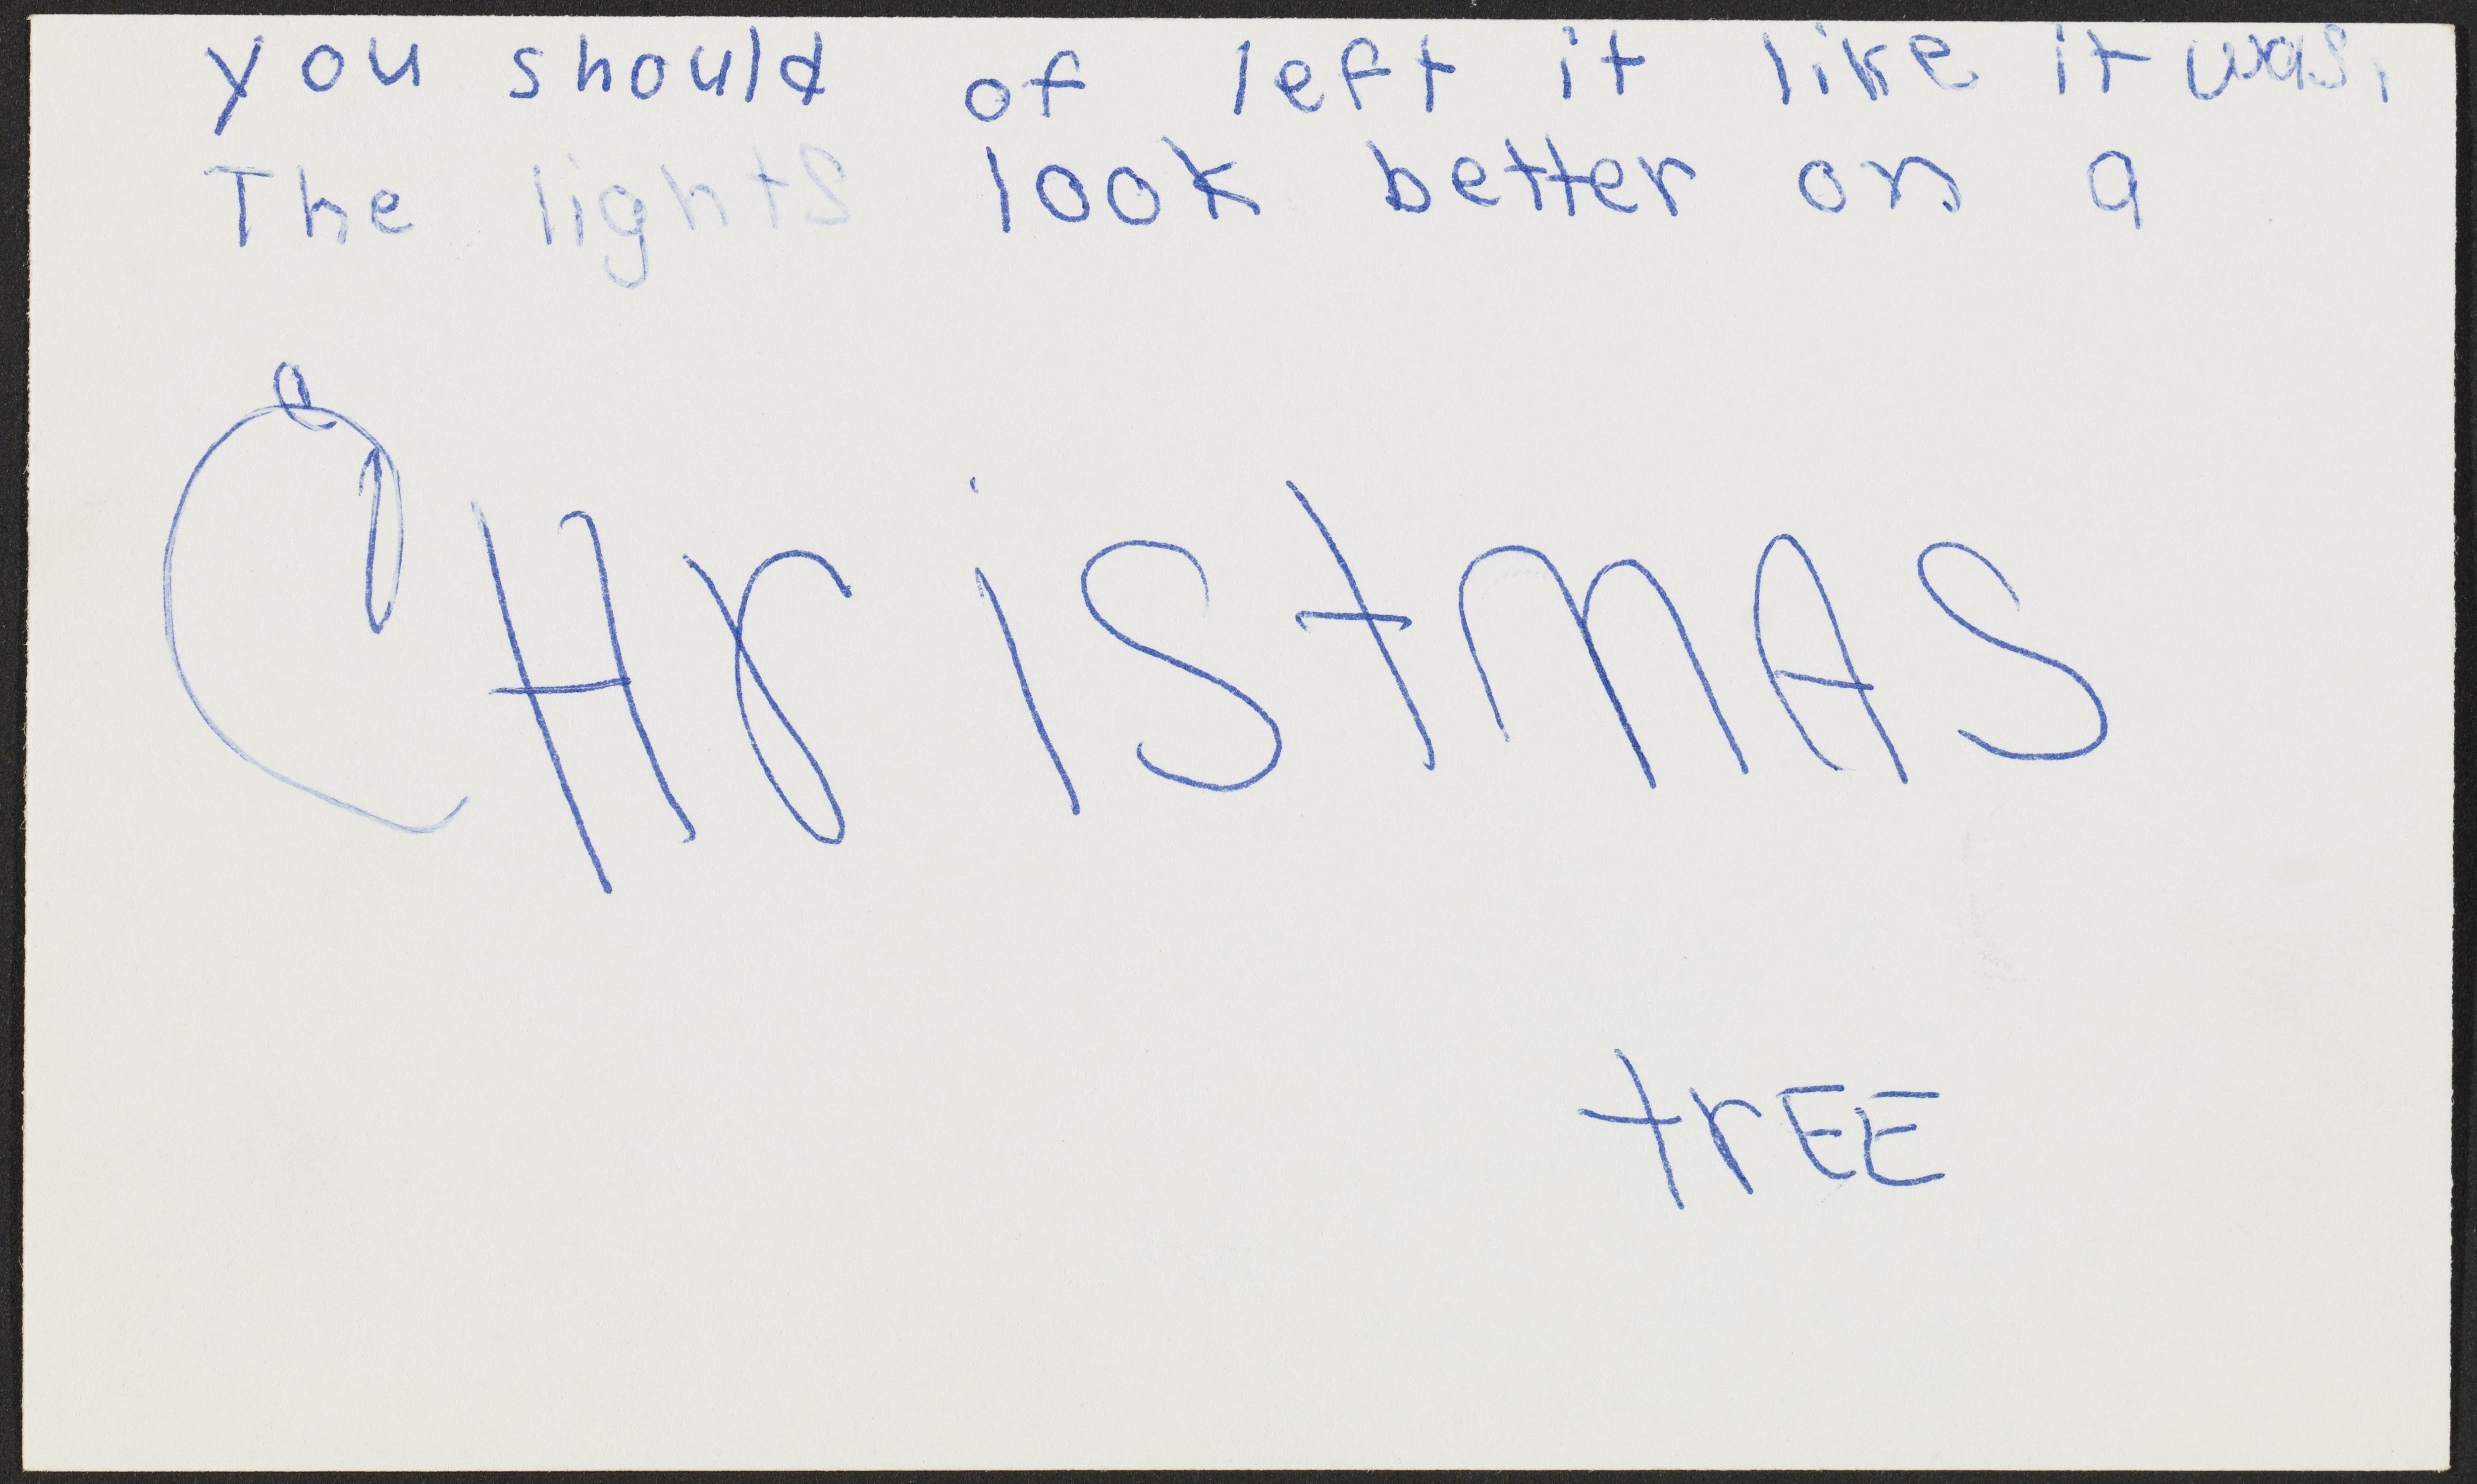 """An index card with handwritten text reads """"you should of left it like it was, the lights look better on a Christmas tree."""" The word """"Christmas"""" takes up most of the index card."""